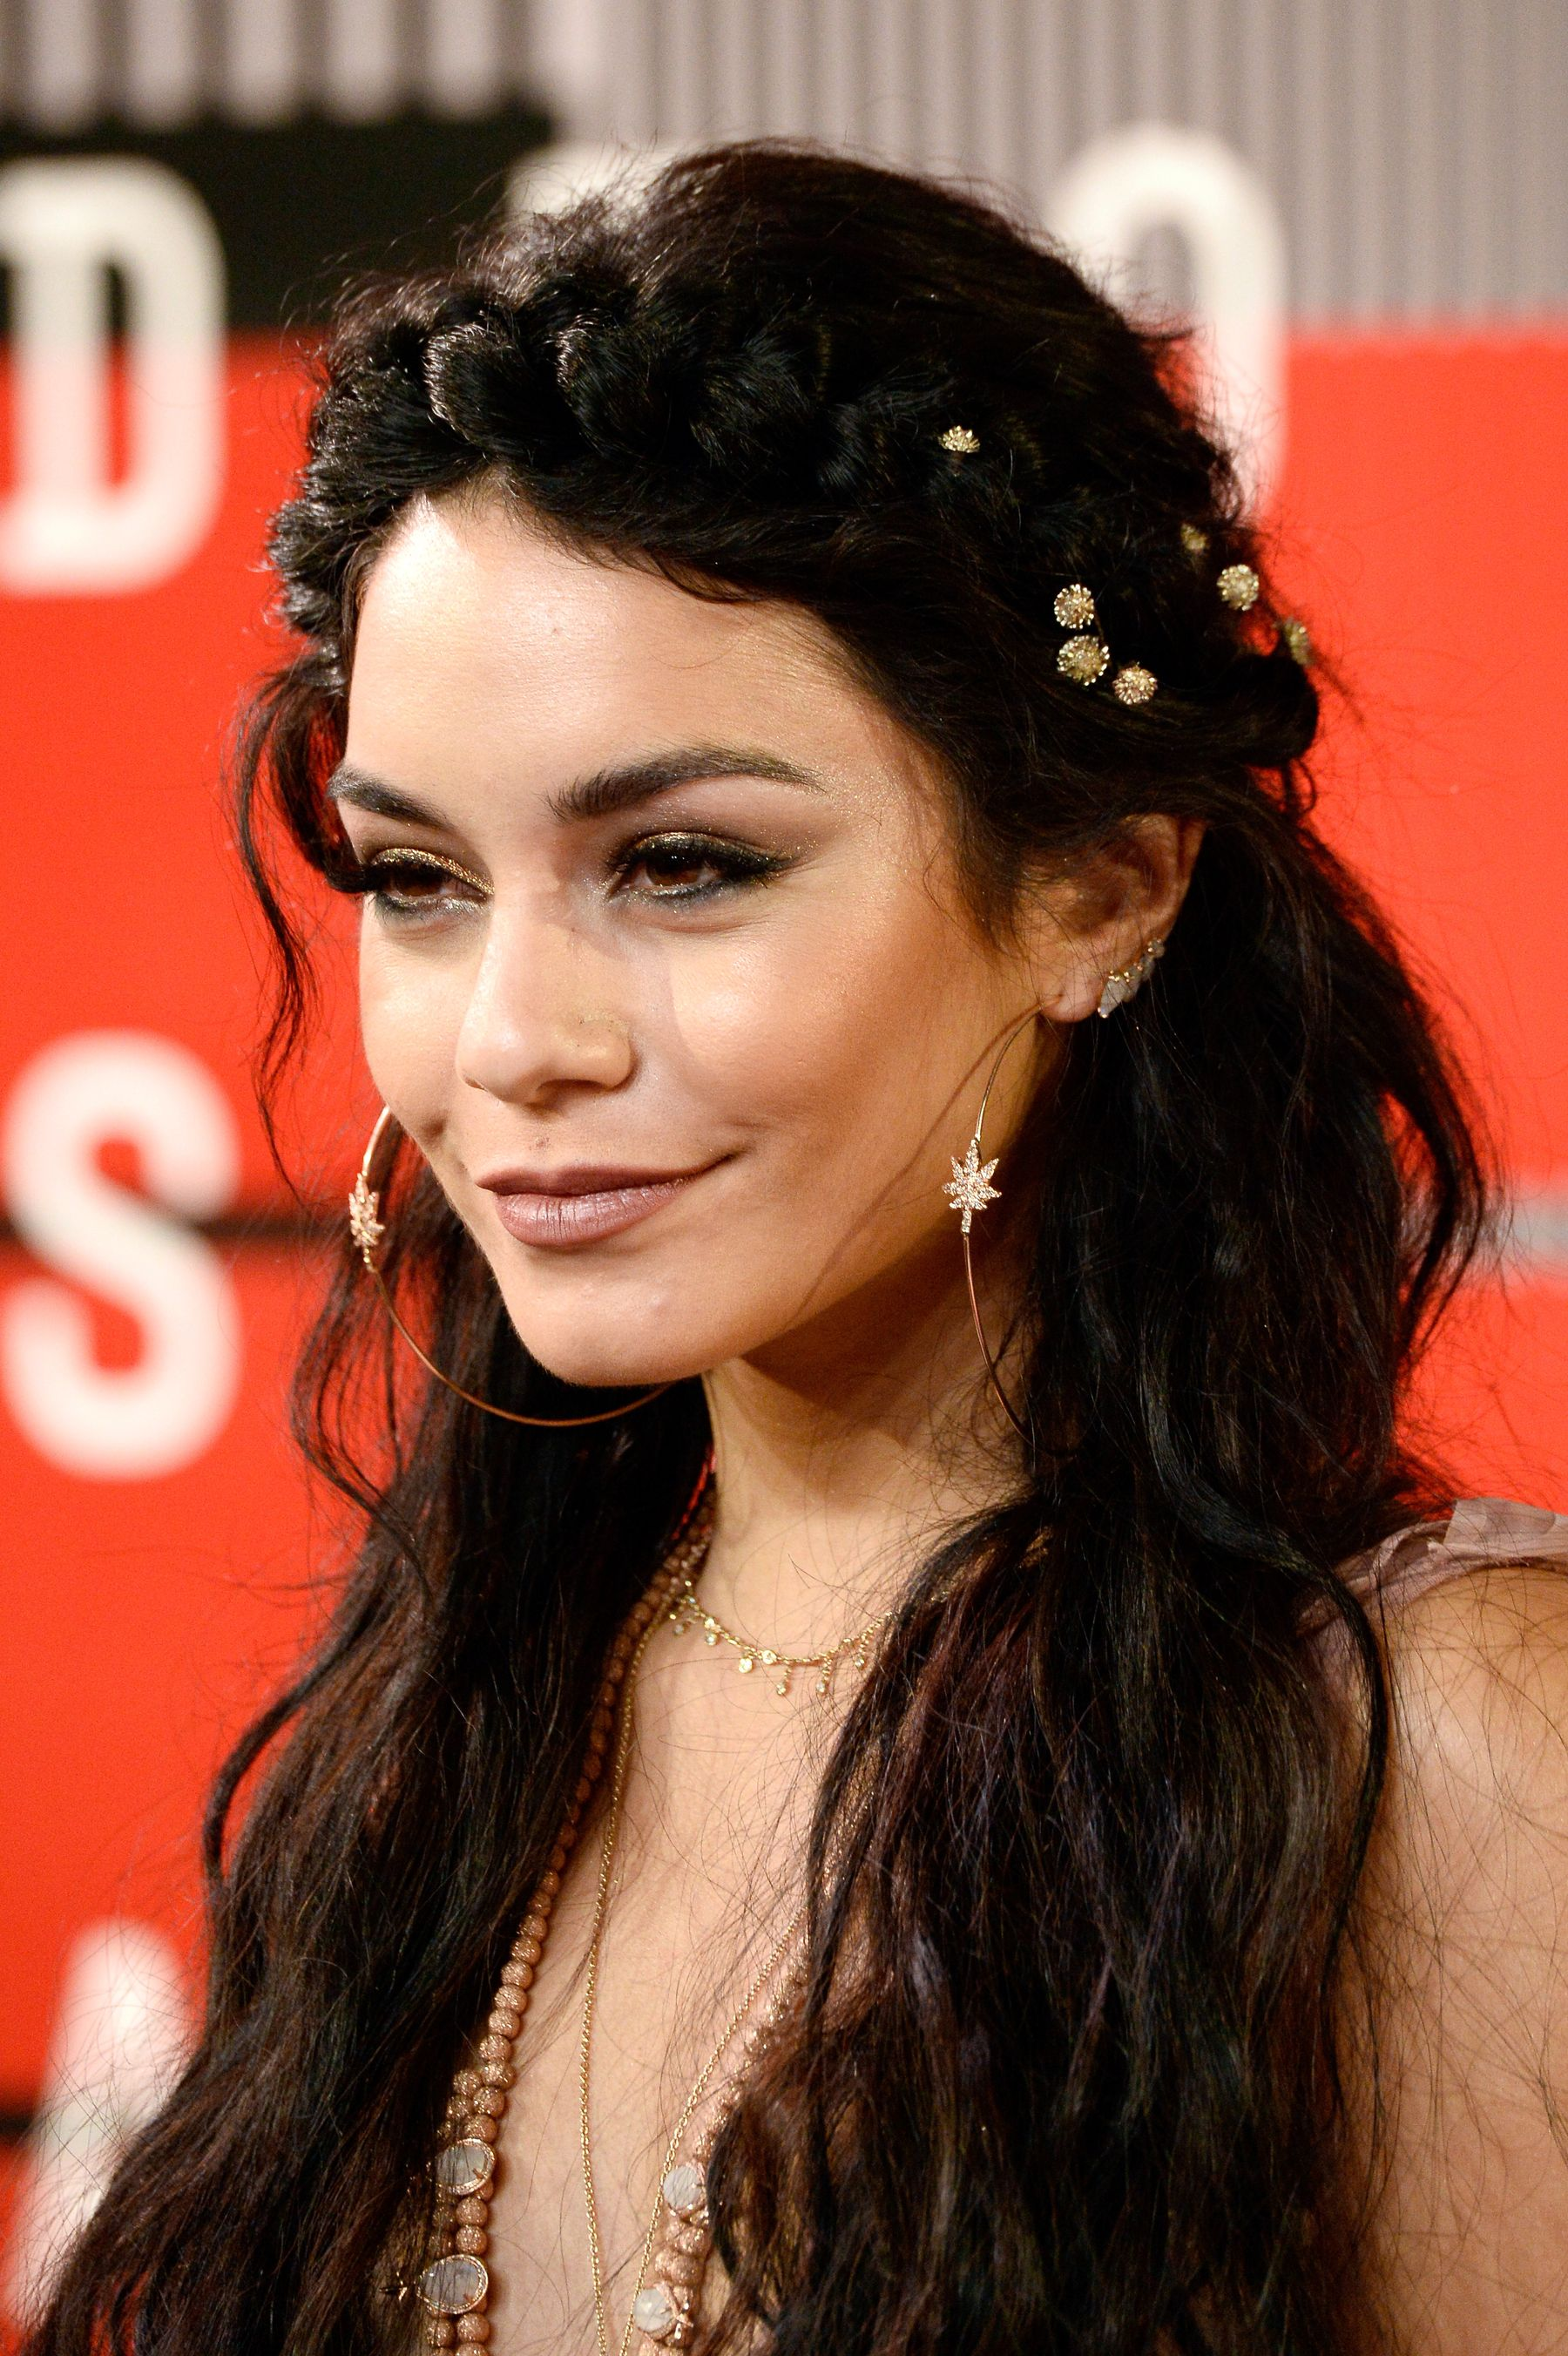 Vanessa Hudgens Little Sister Is Our New Style Crush Shemazing